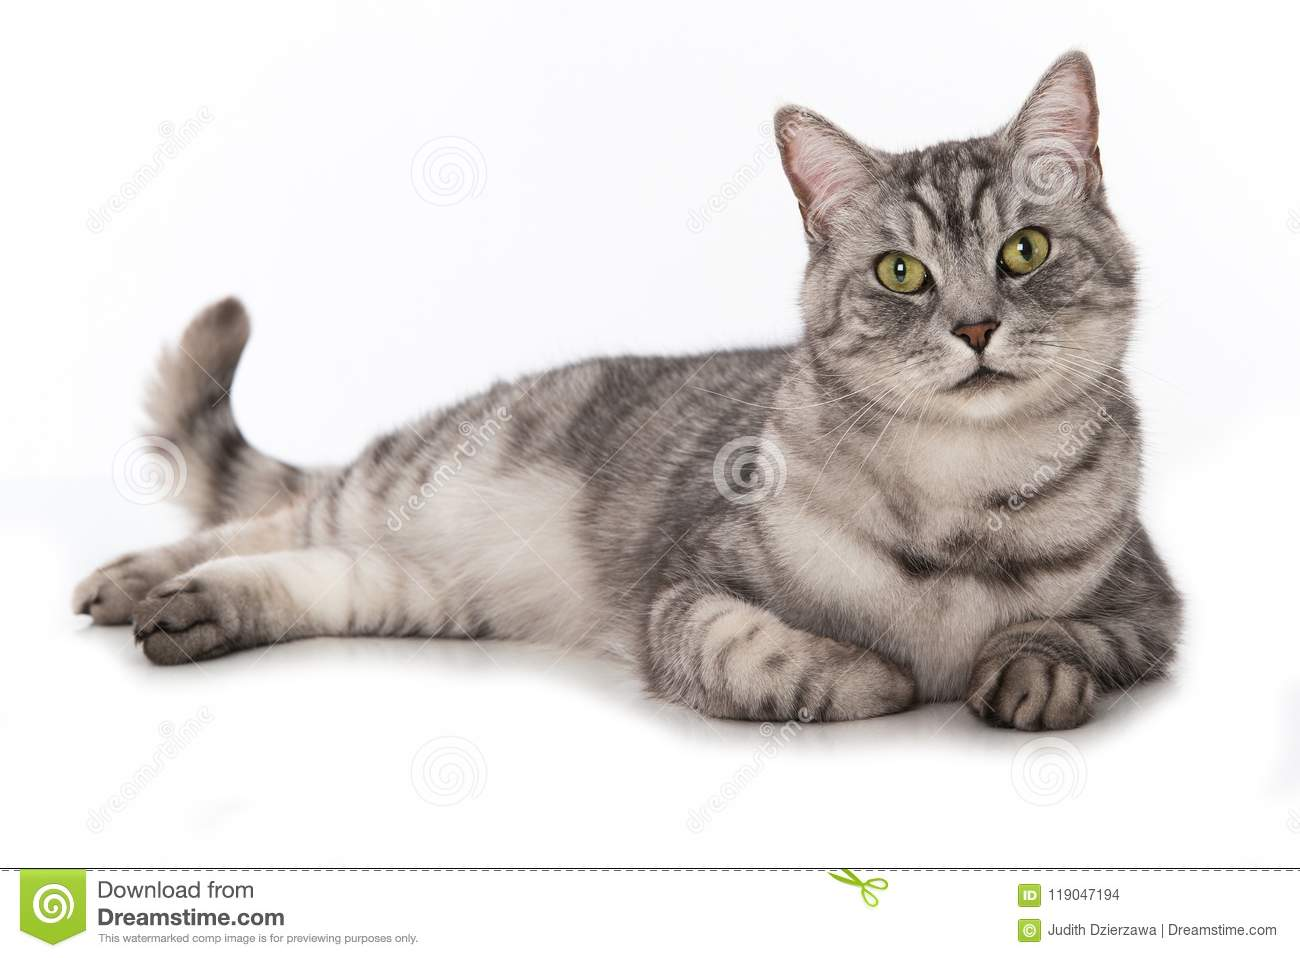 961d7118e7 Silver Tabby Cat Lying On A White Background Stock Photo - Image of ...